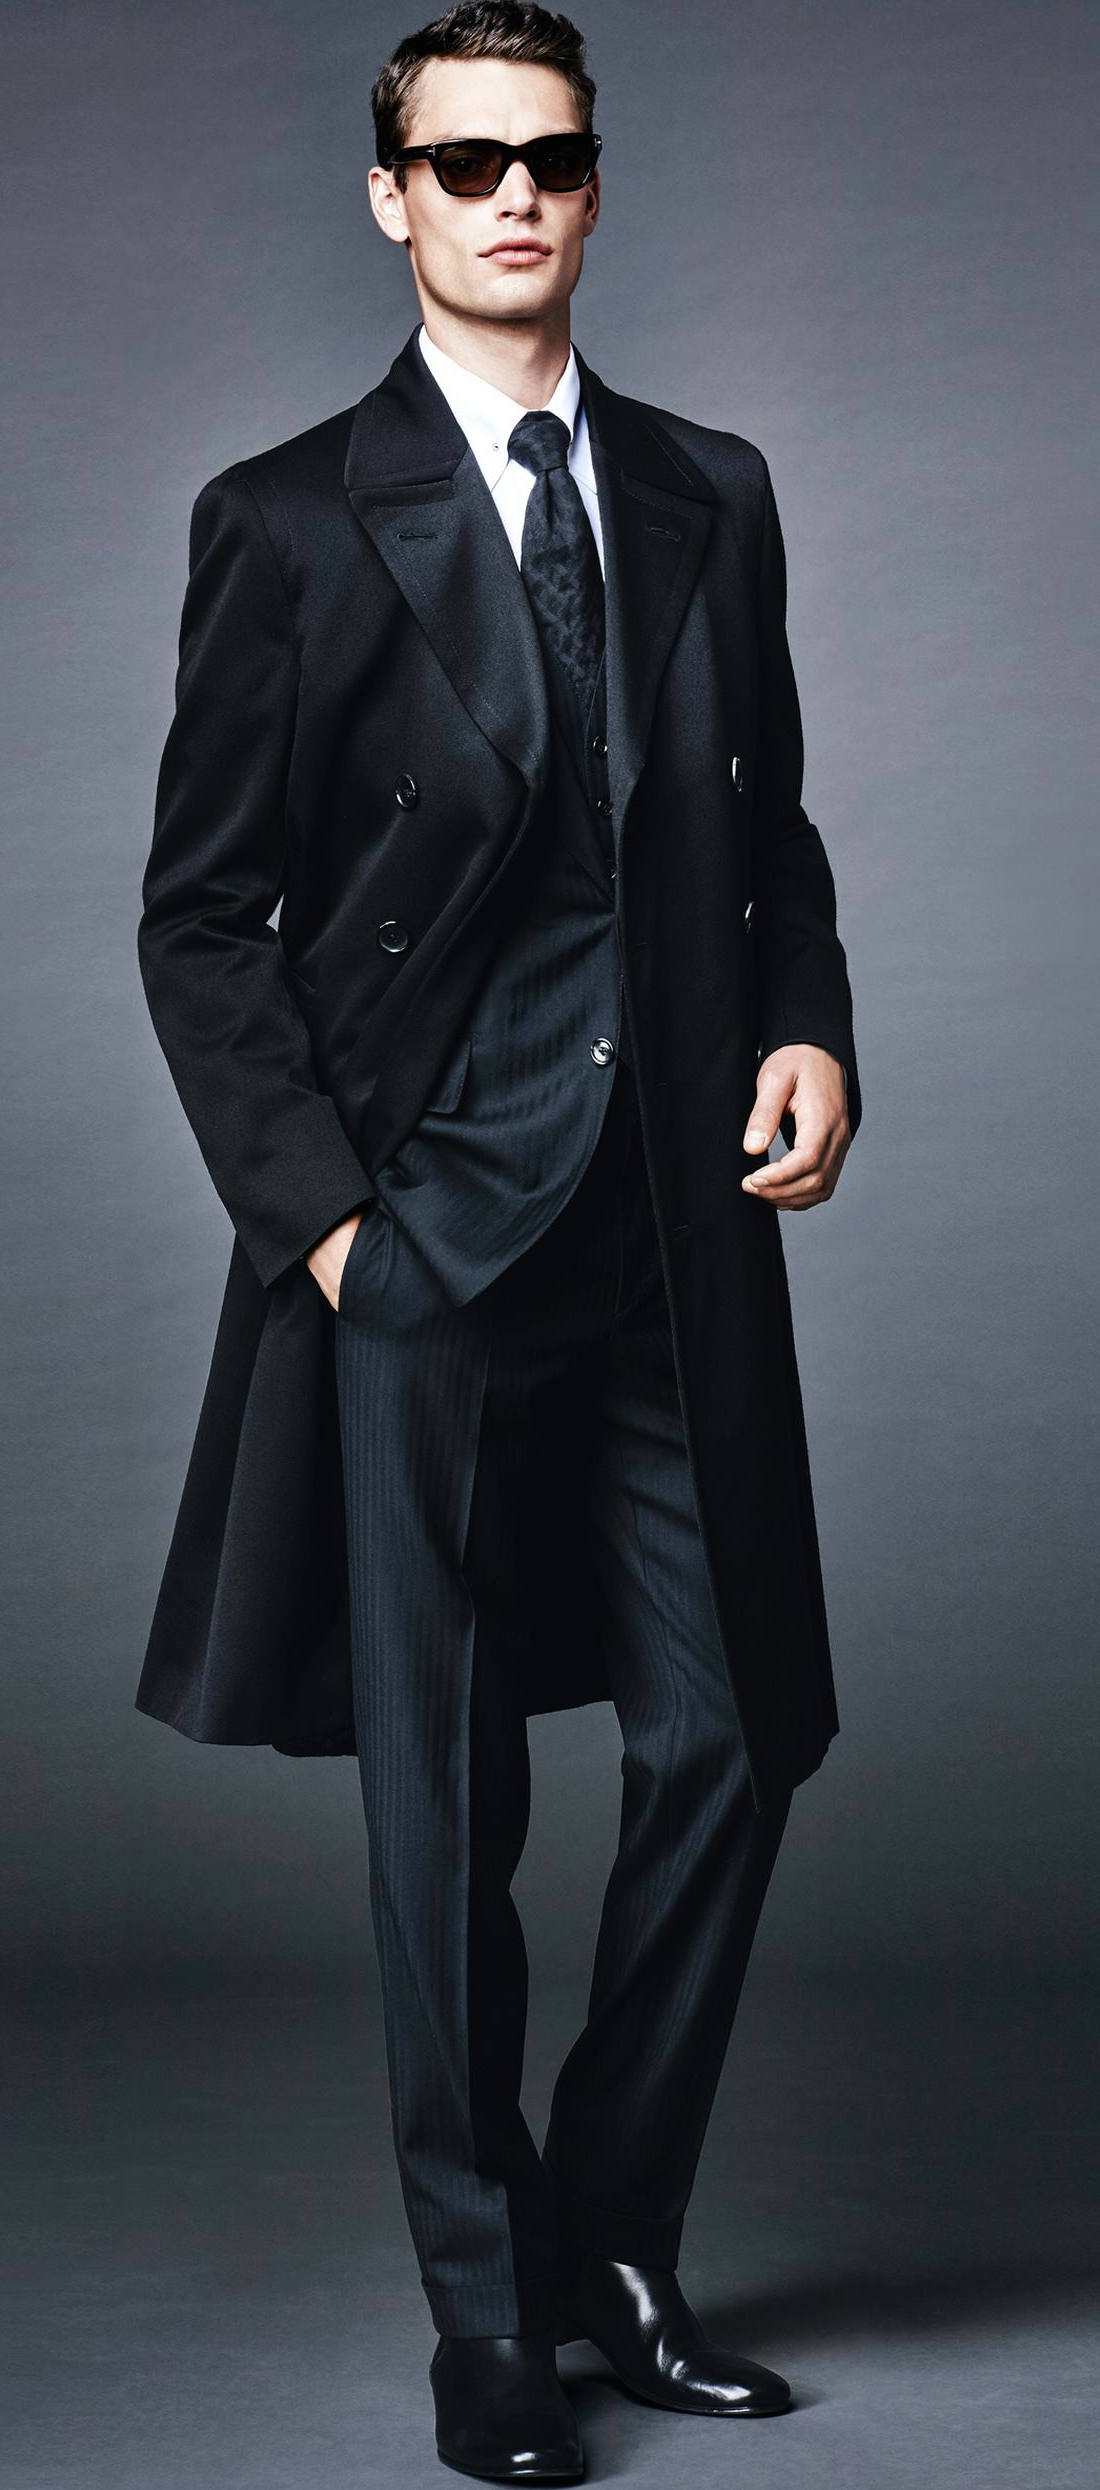 Tom Ford Bond Collection 16 Men Suits In 2019 Fashion Mens Style